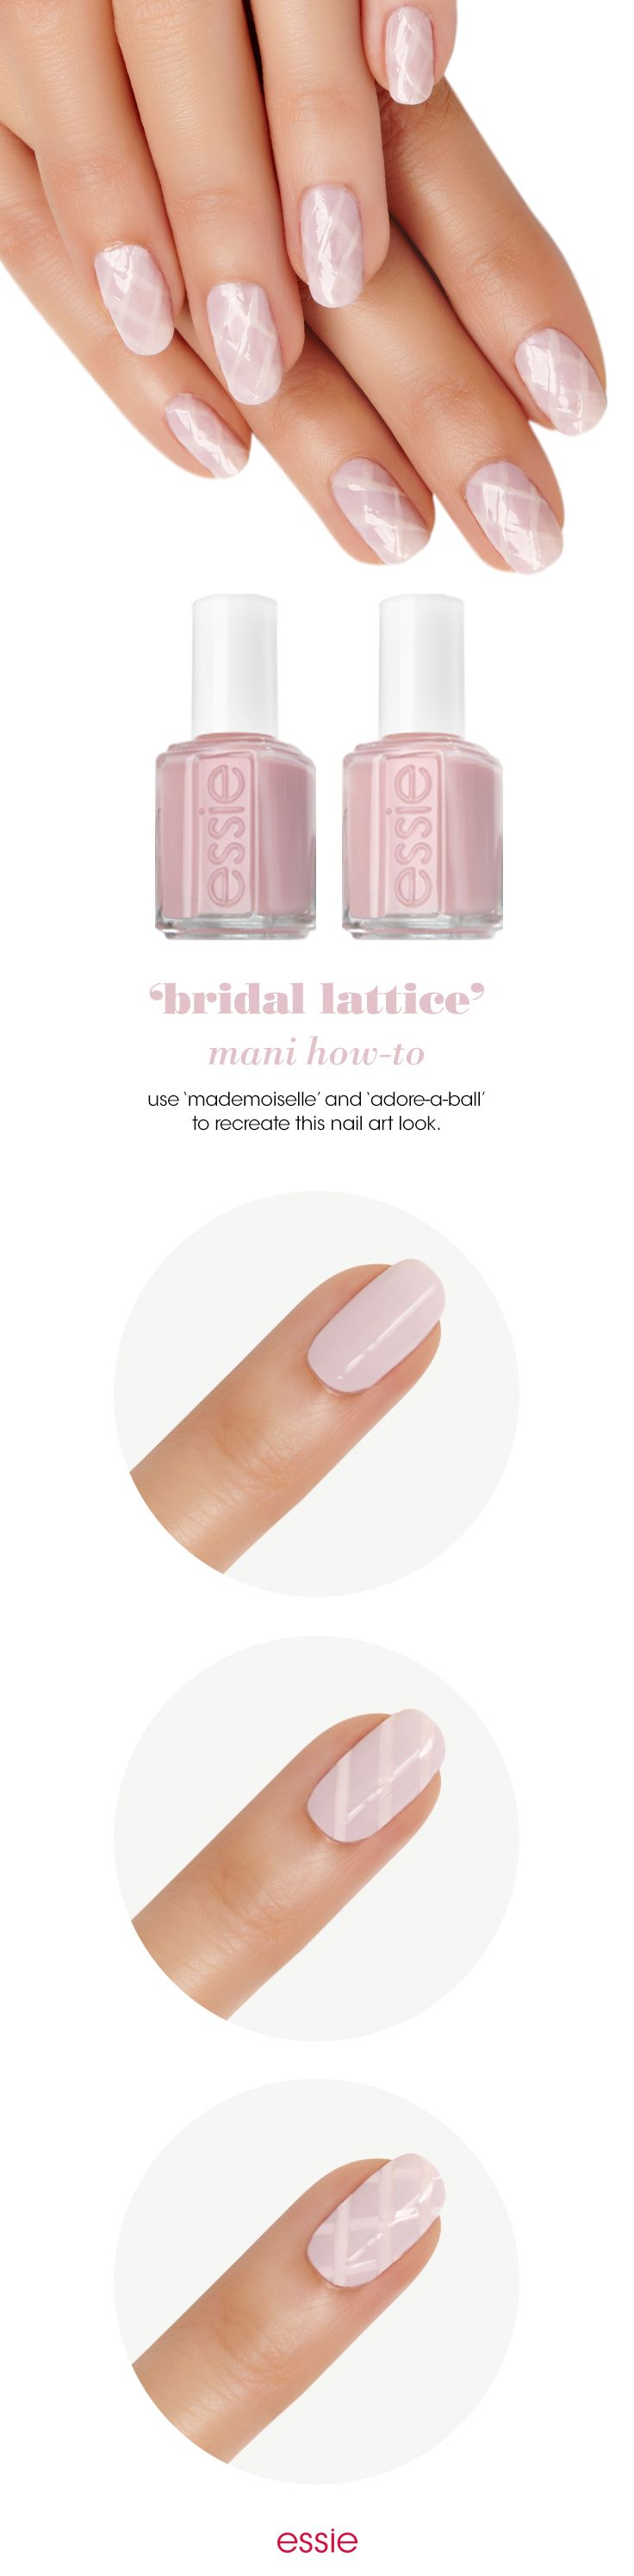 Nails are the perfect accessory for every bride. Add an elegant twist to your wedding day mani with a simple criss cross nail art design featuring two iconic essie sheers. How to get the look in just three easy steps: First apply 1 coat of 'mademoiselle' and let dry. With 'adore-a-ball', draw one line diagonally from left to right. Do this again in the opposite direction to achieve a lattice pattern. Finally shine and seal with an essie top coat.